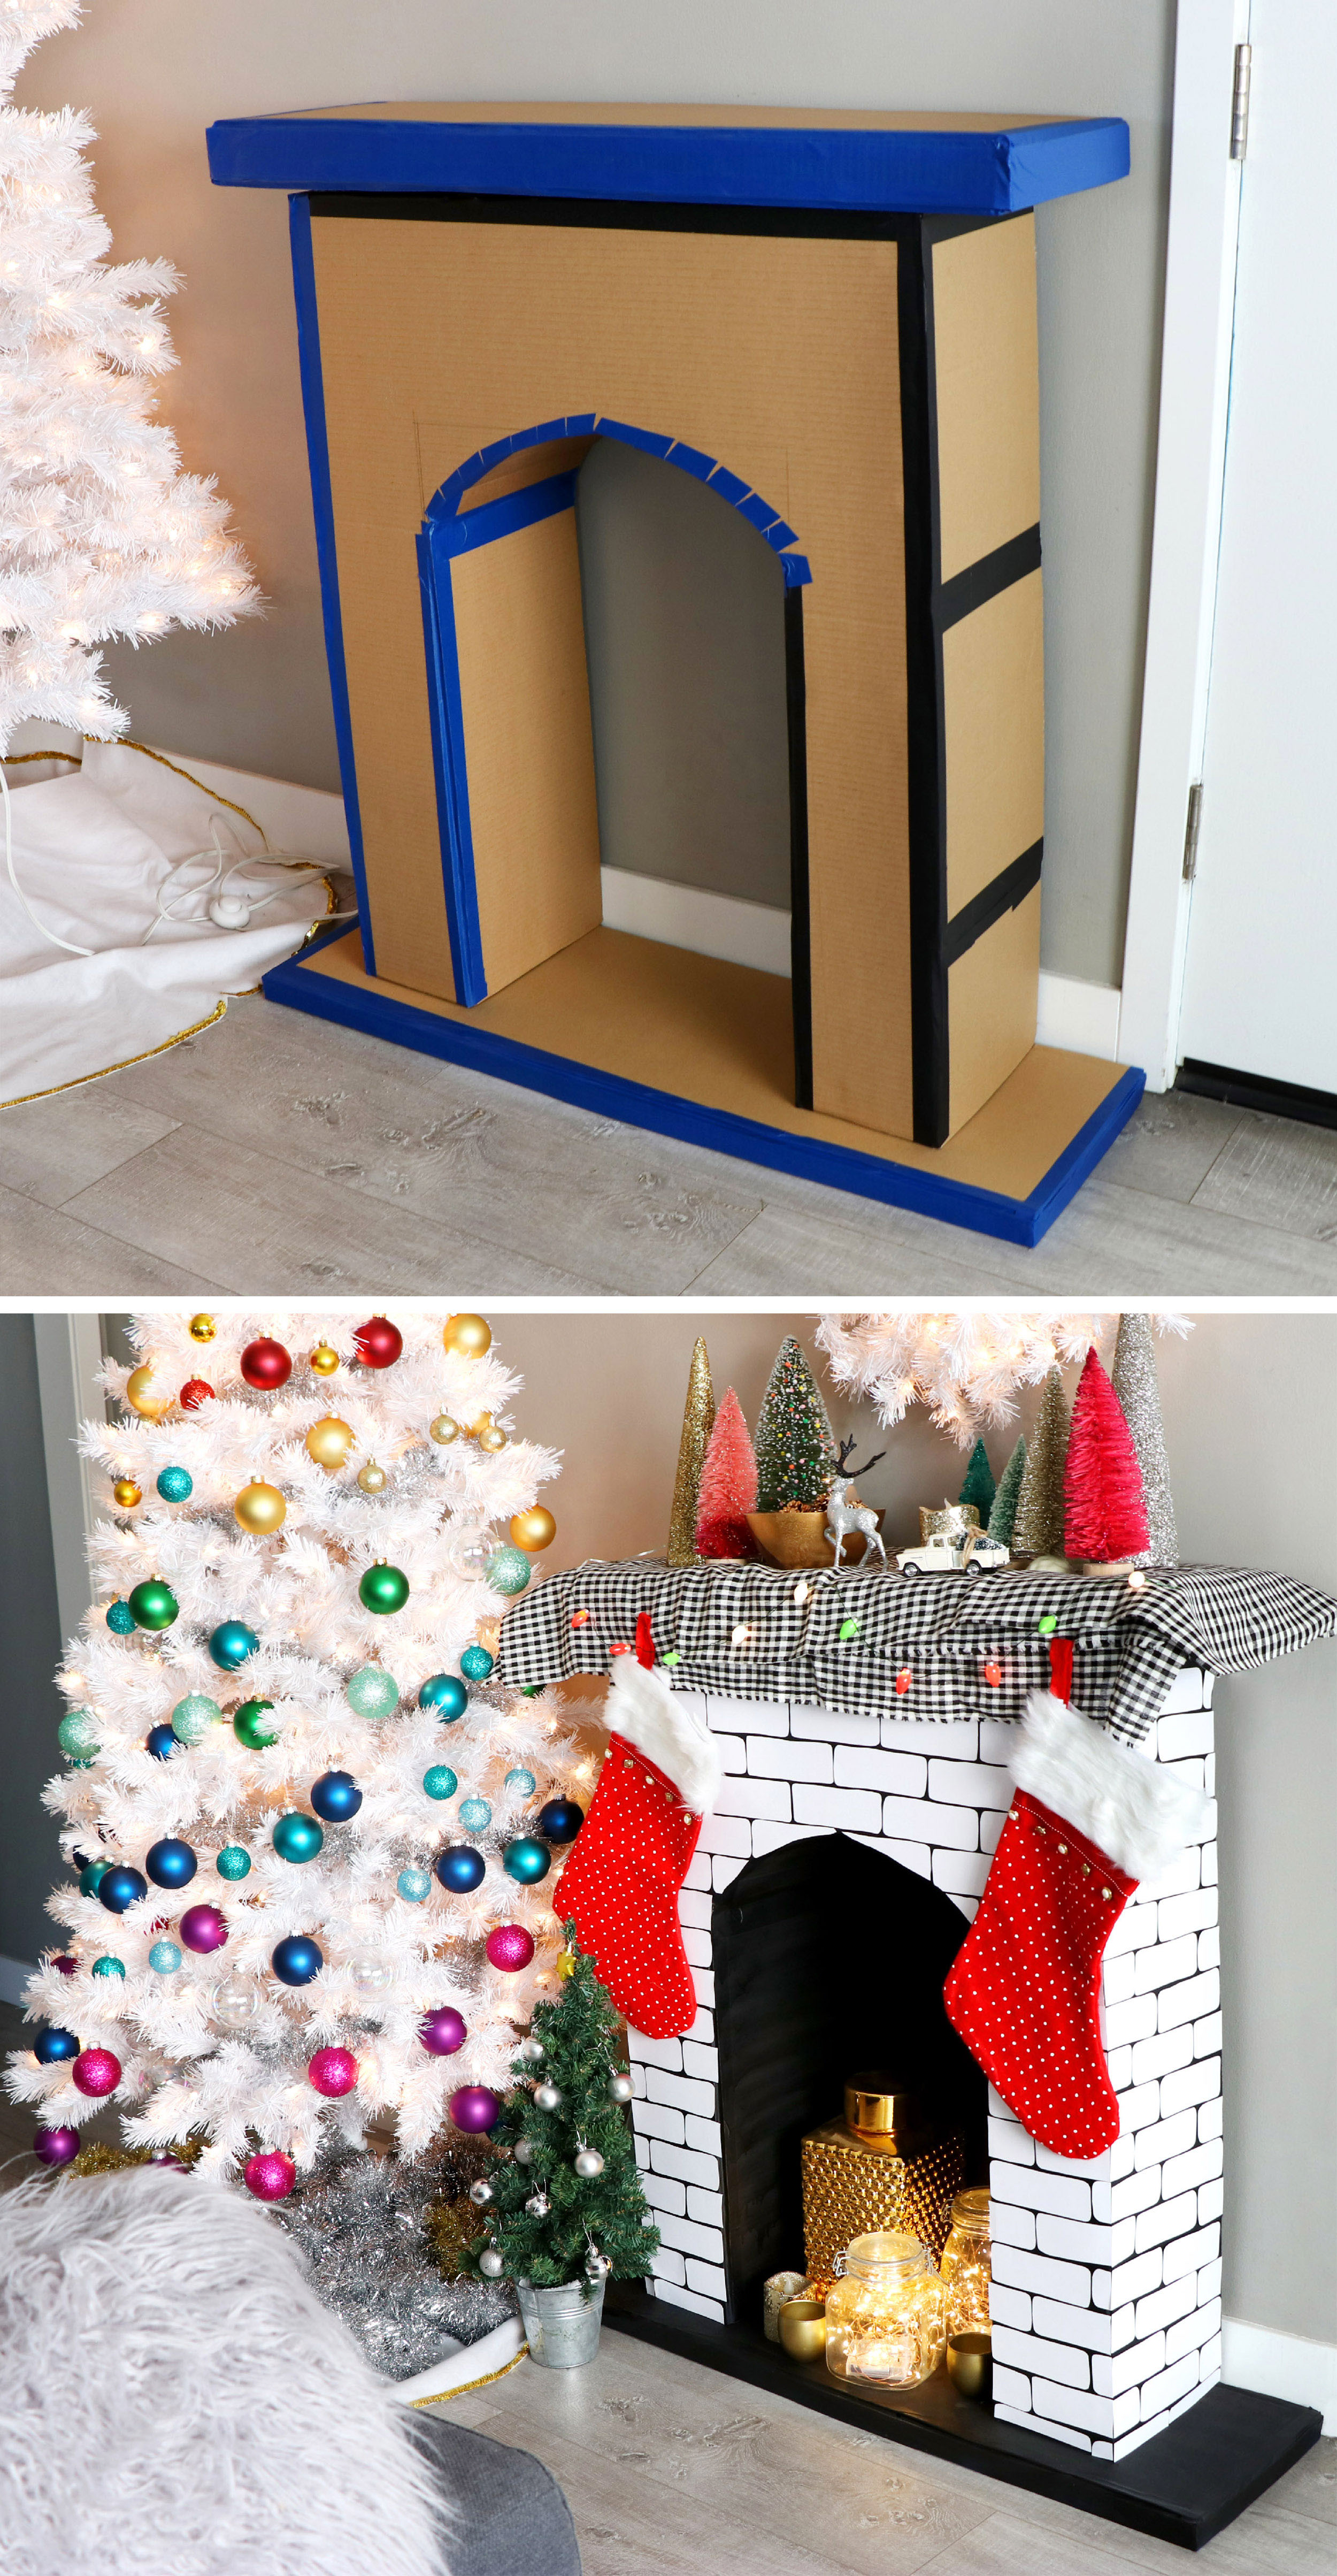 DIY Faux Cardboard Fireplace Christmas Decoration